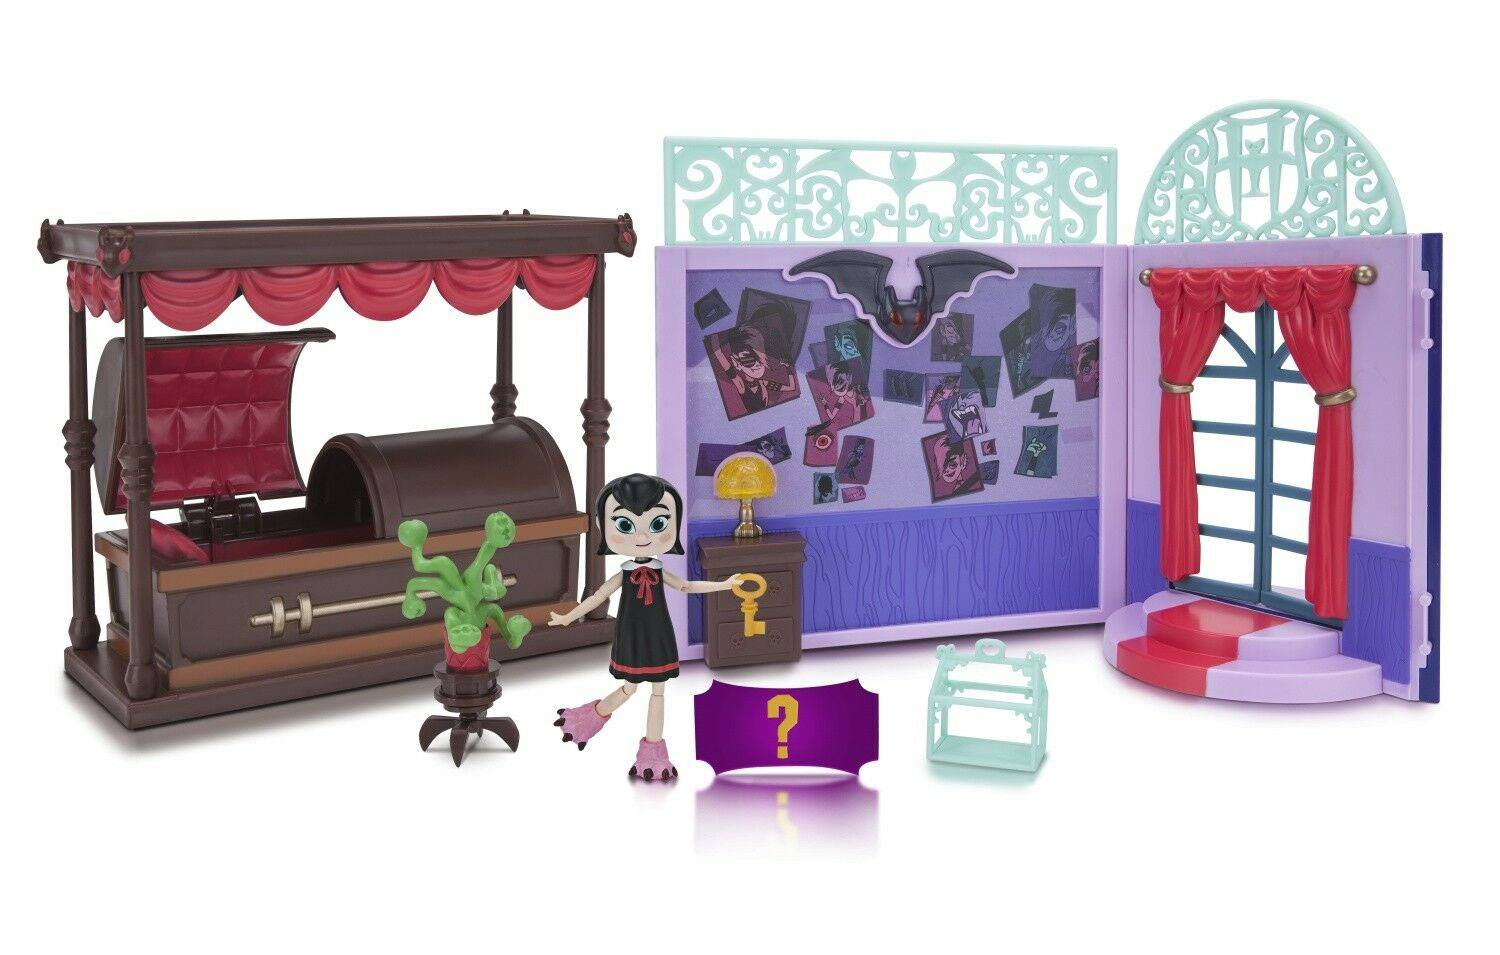 Hotel Transylvania Playset Action Figure Mavis's Room